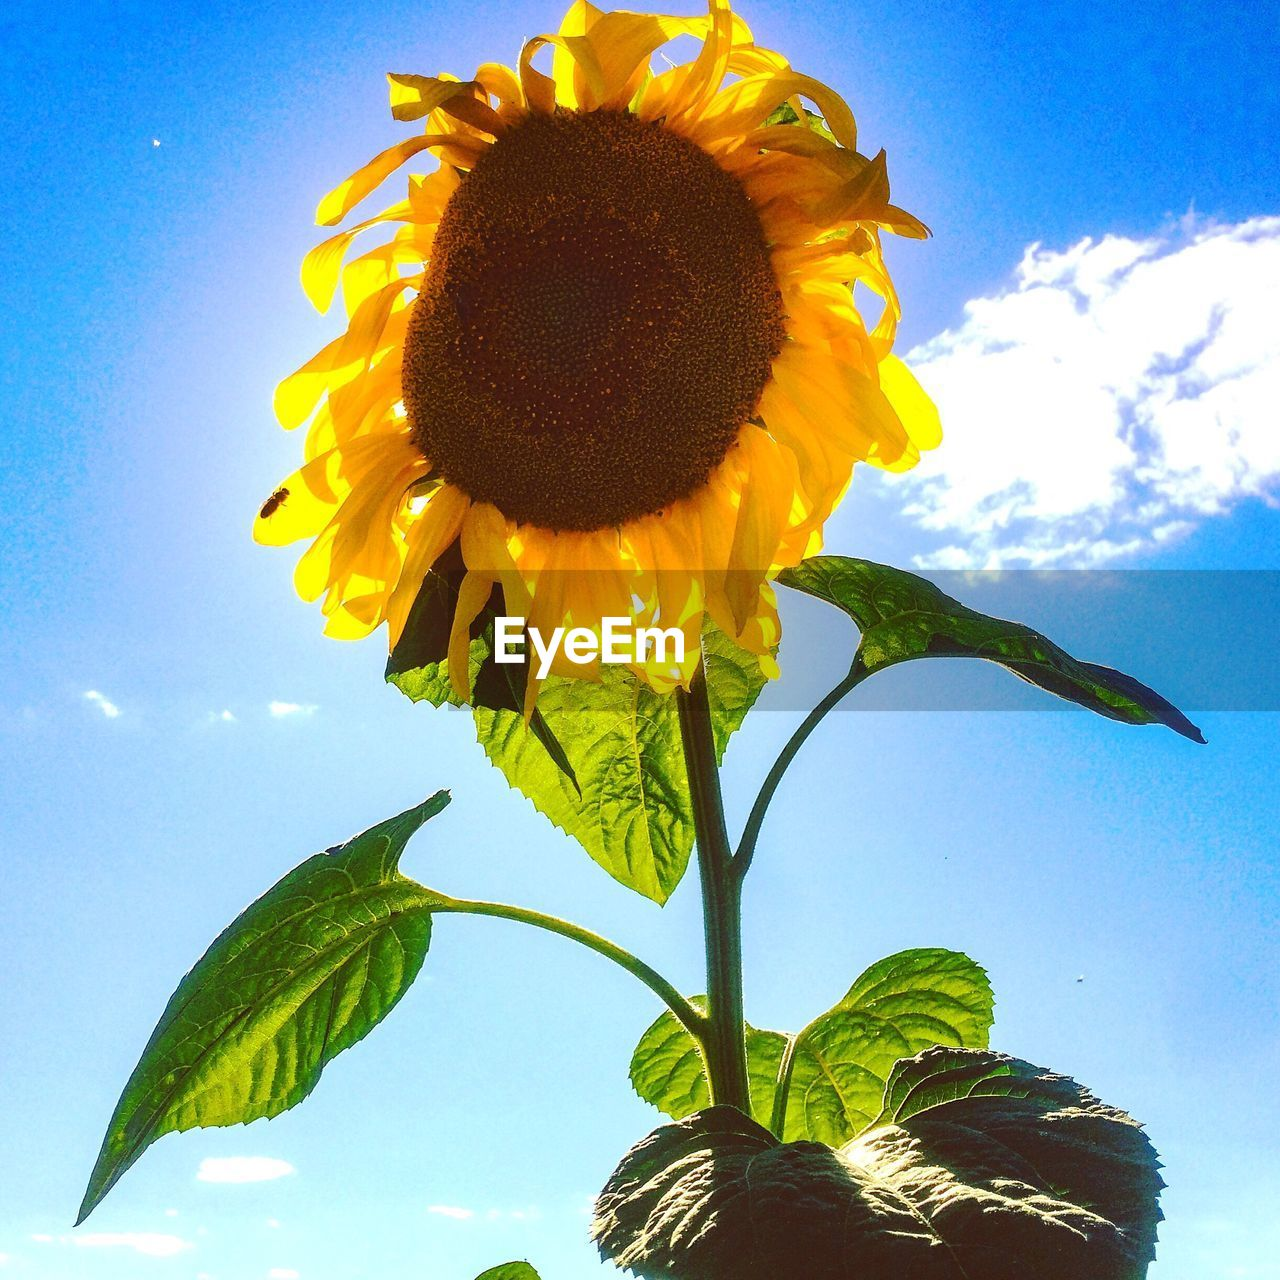 LOW ANGLE VIEW OF SUNFLOWERS AGAINST SKY